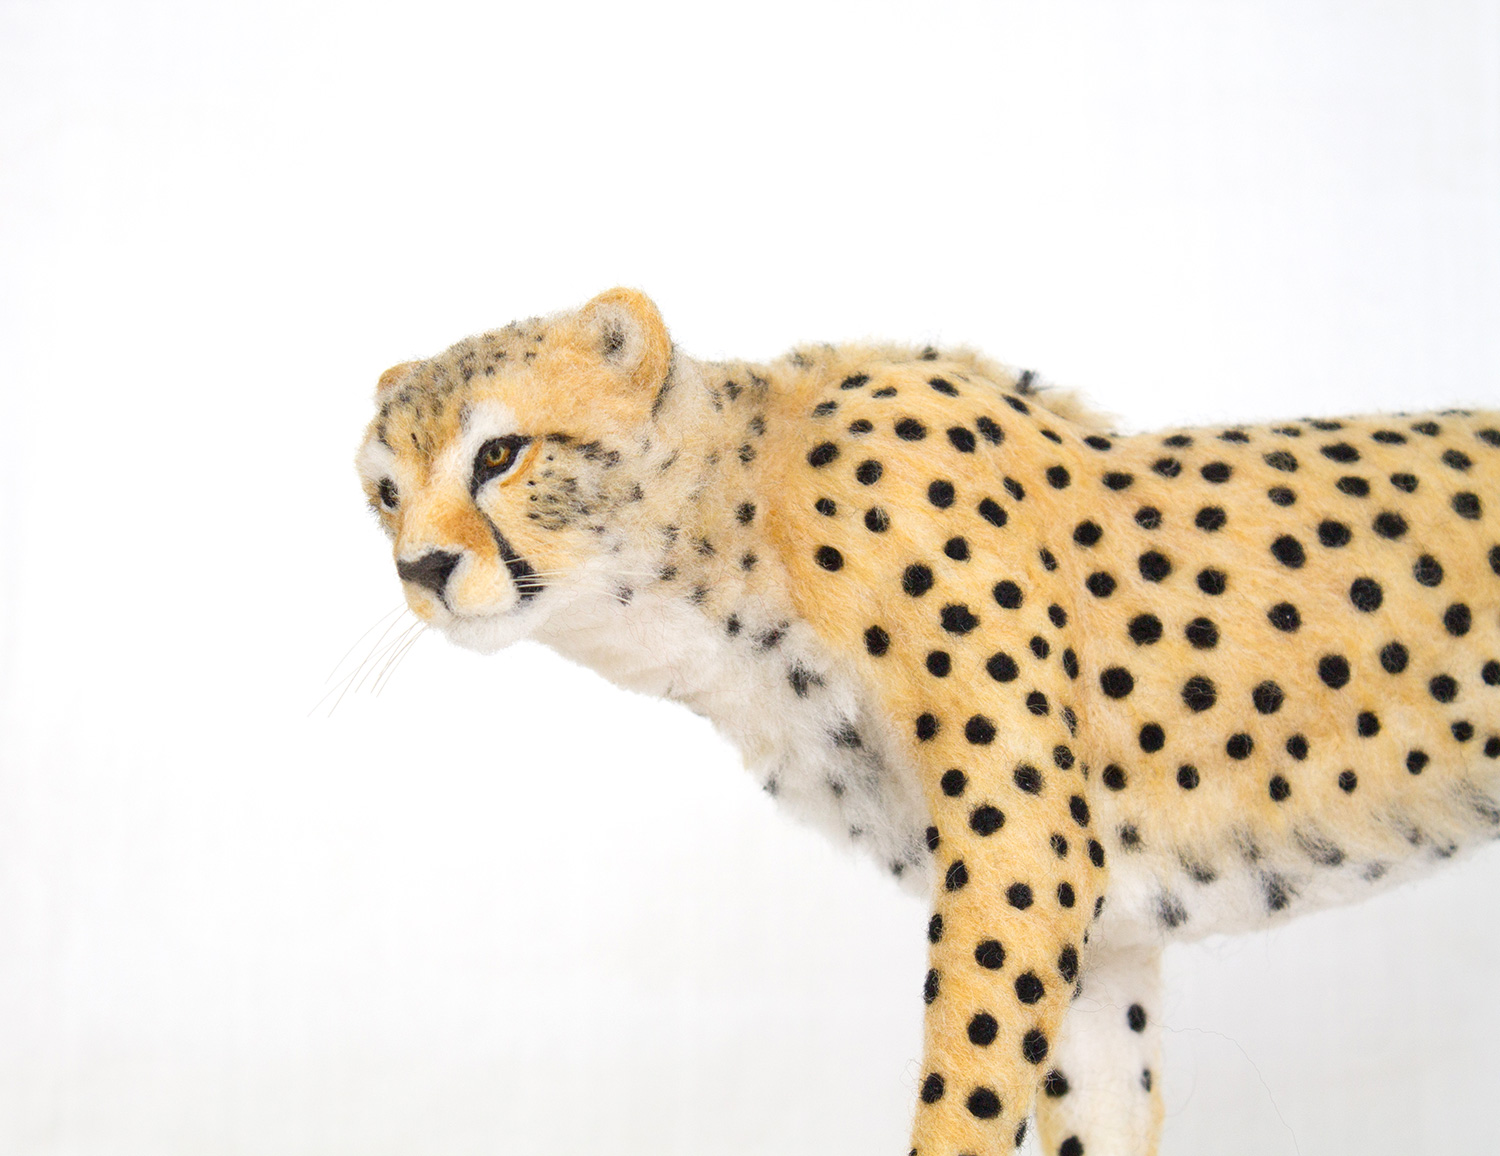 needle-felt-cat-sculpture-15.jpg